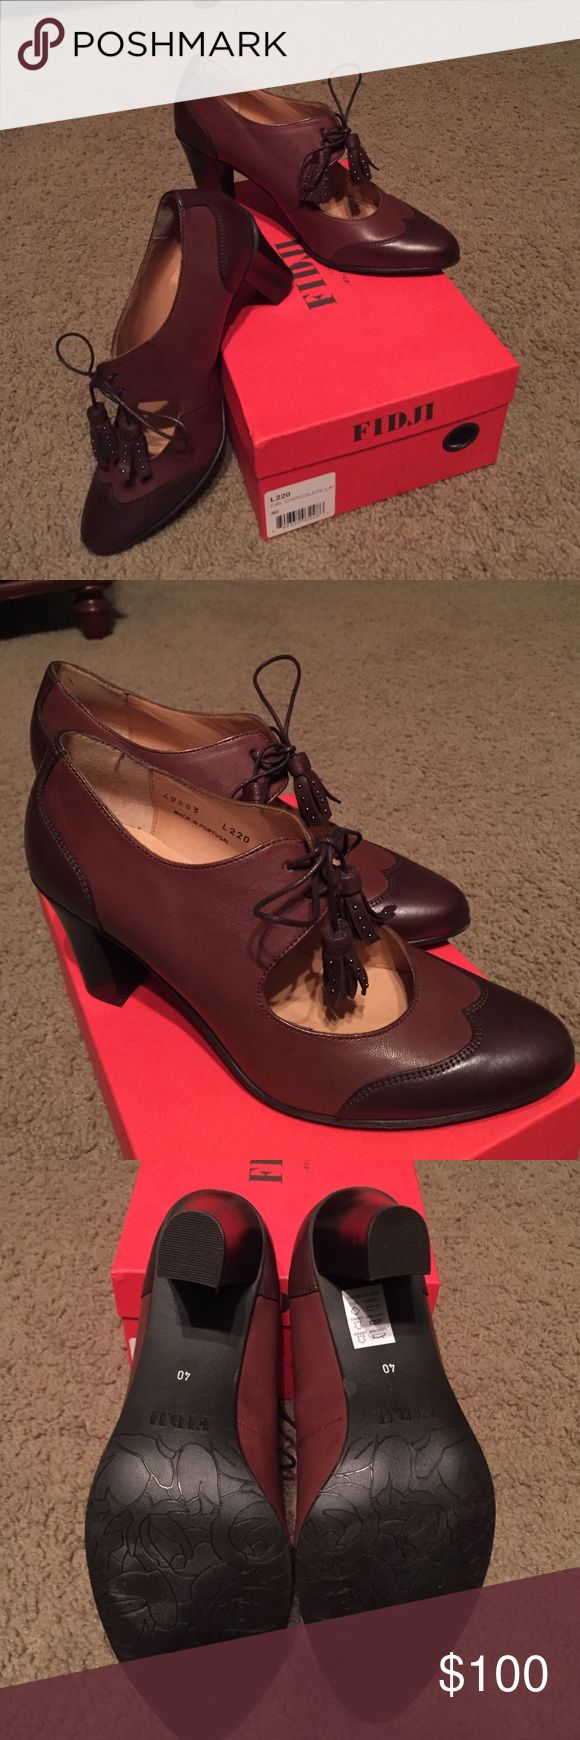 Fidji L220 Womens Two Tone Brown Heels New in box- Fidji L220 Womens Two Tone Chocolate Brown Heels with tassel ties. Made from Italian Leather. These are BEAUTIFUL- I just don't wear heels anymore. Fidji Shoes Heels